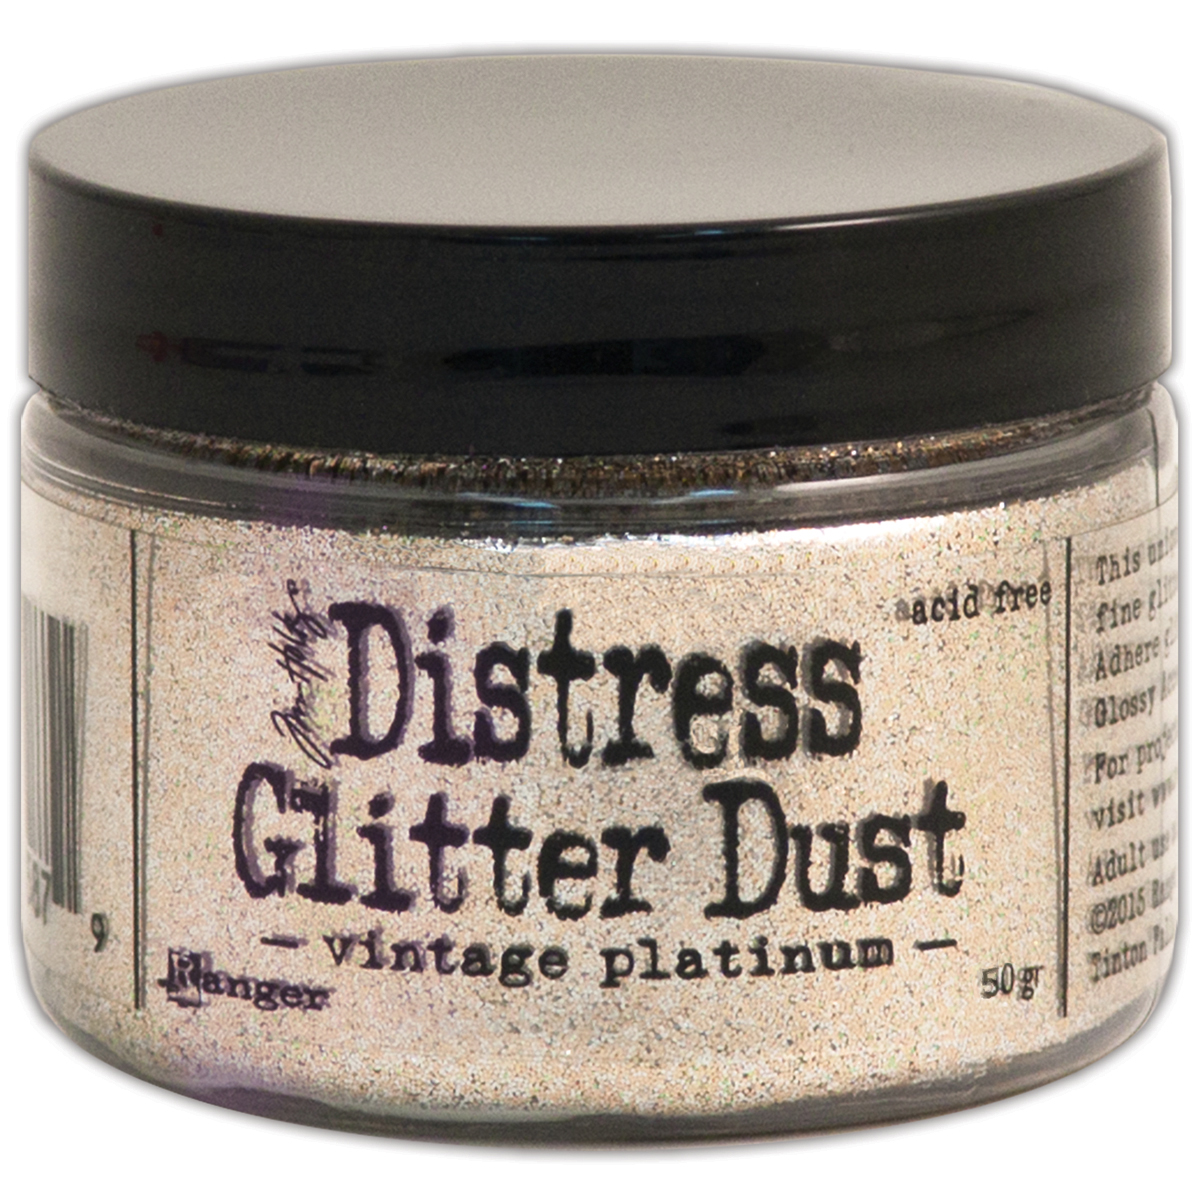 Tim Holtz Distress Glitter Dust 50g-Vintage Platinum